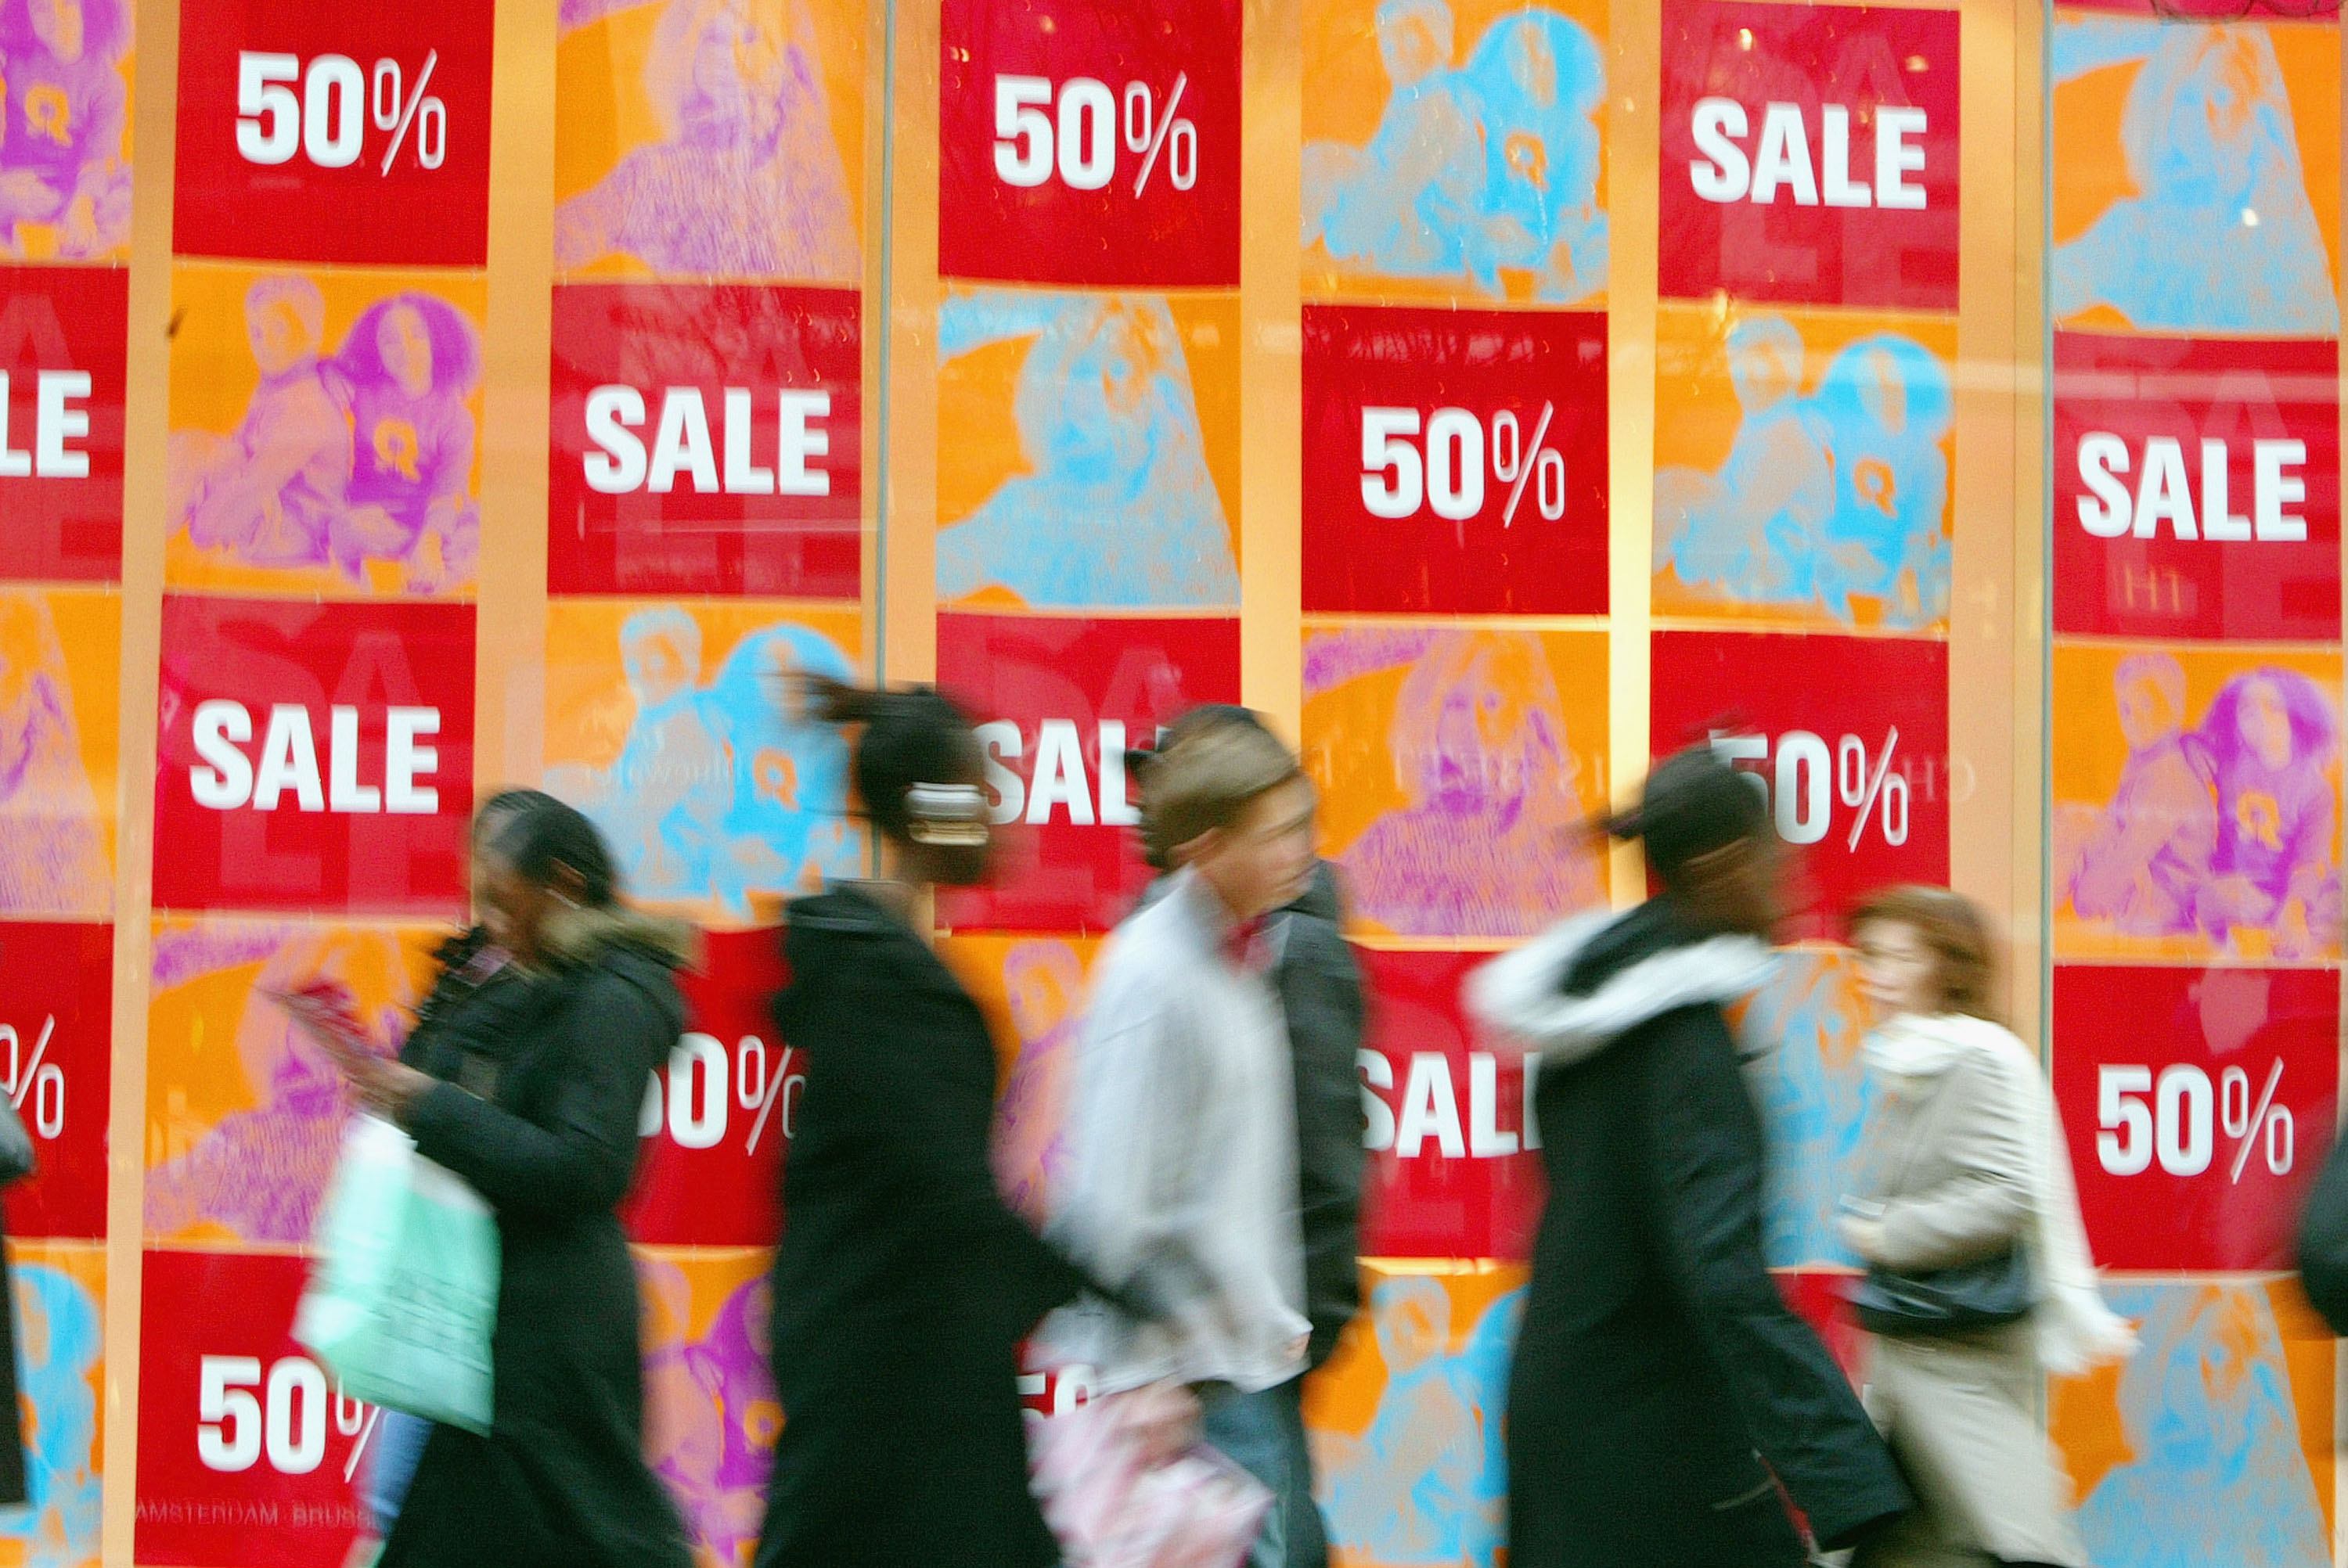 Shoppers during a sale